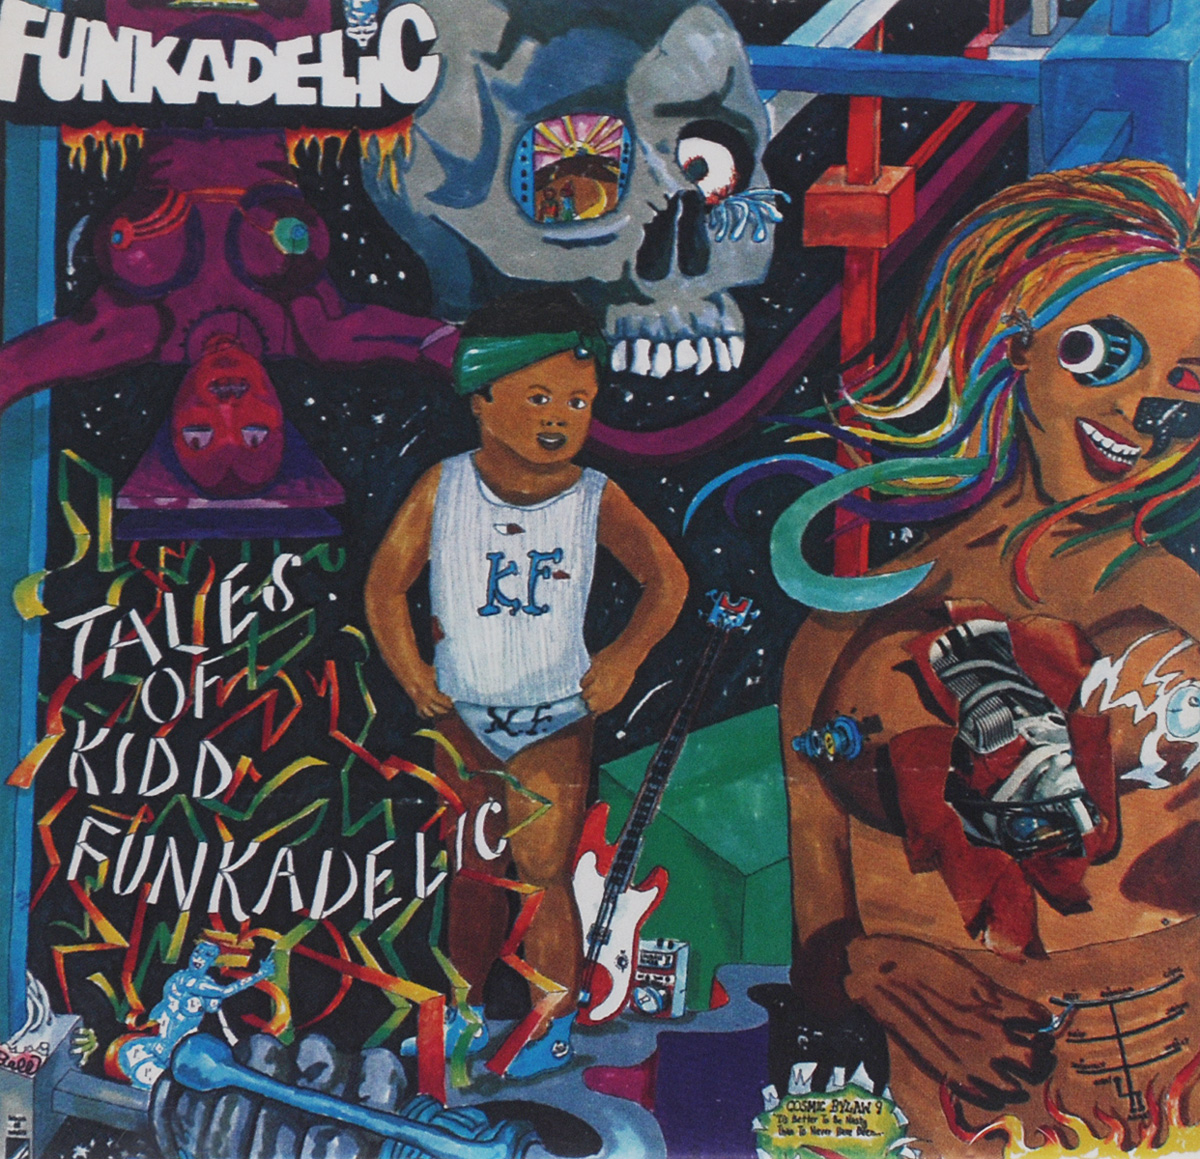 Funkadelic Funkadelic. Tales Of Kidd Funkadelic funkadelic funkadelic the electric spanking of war babies lp